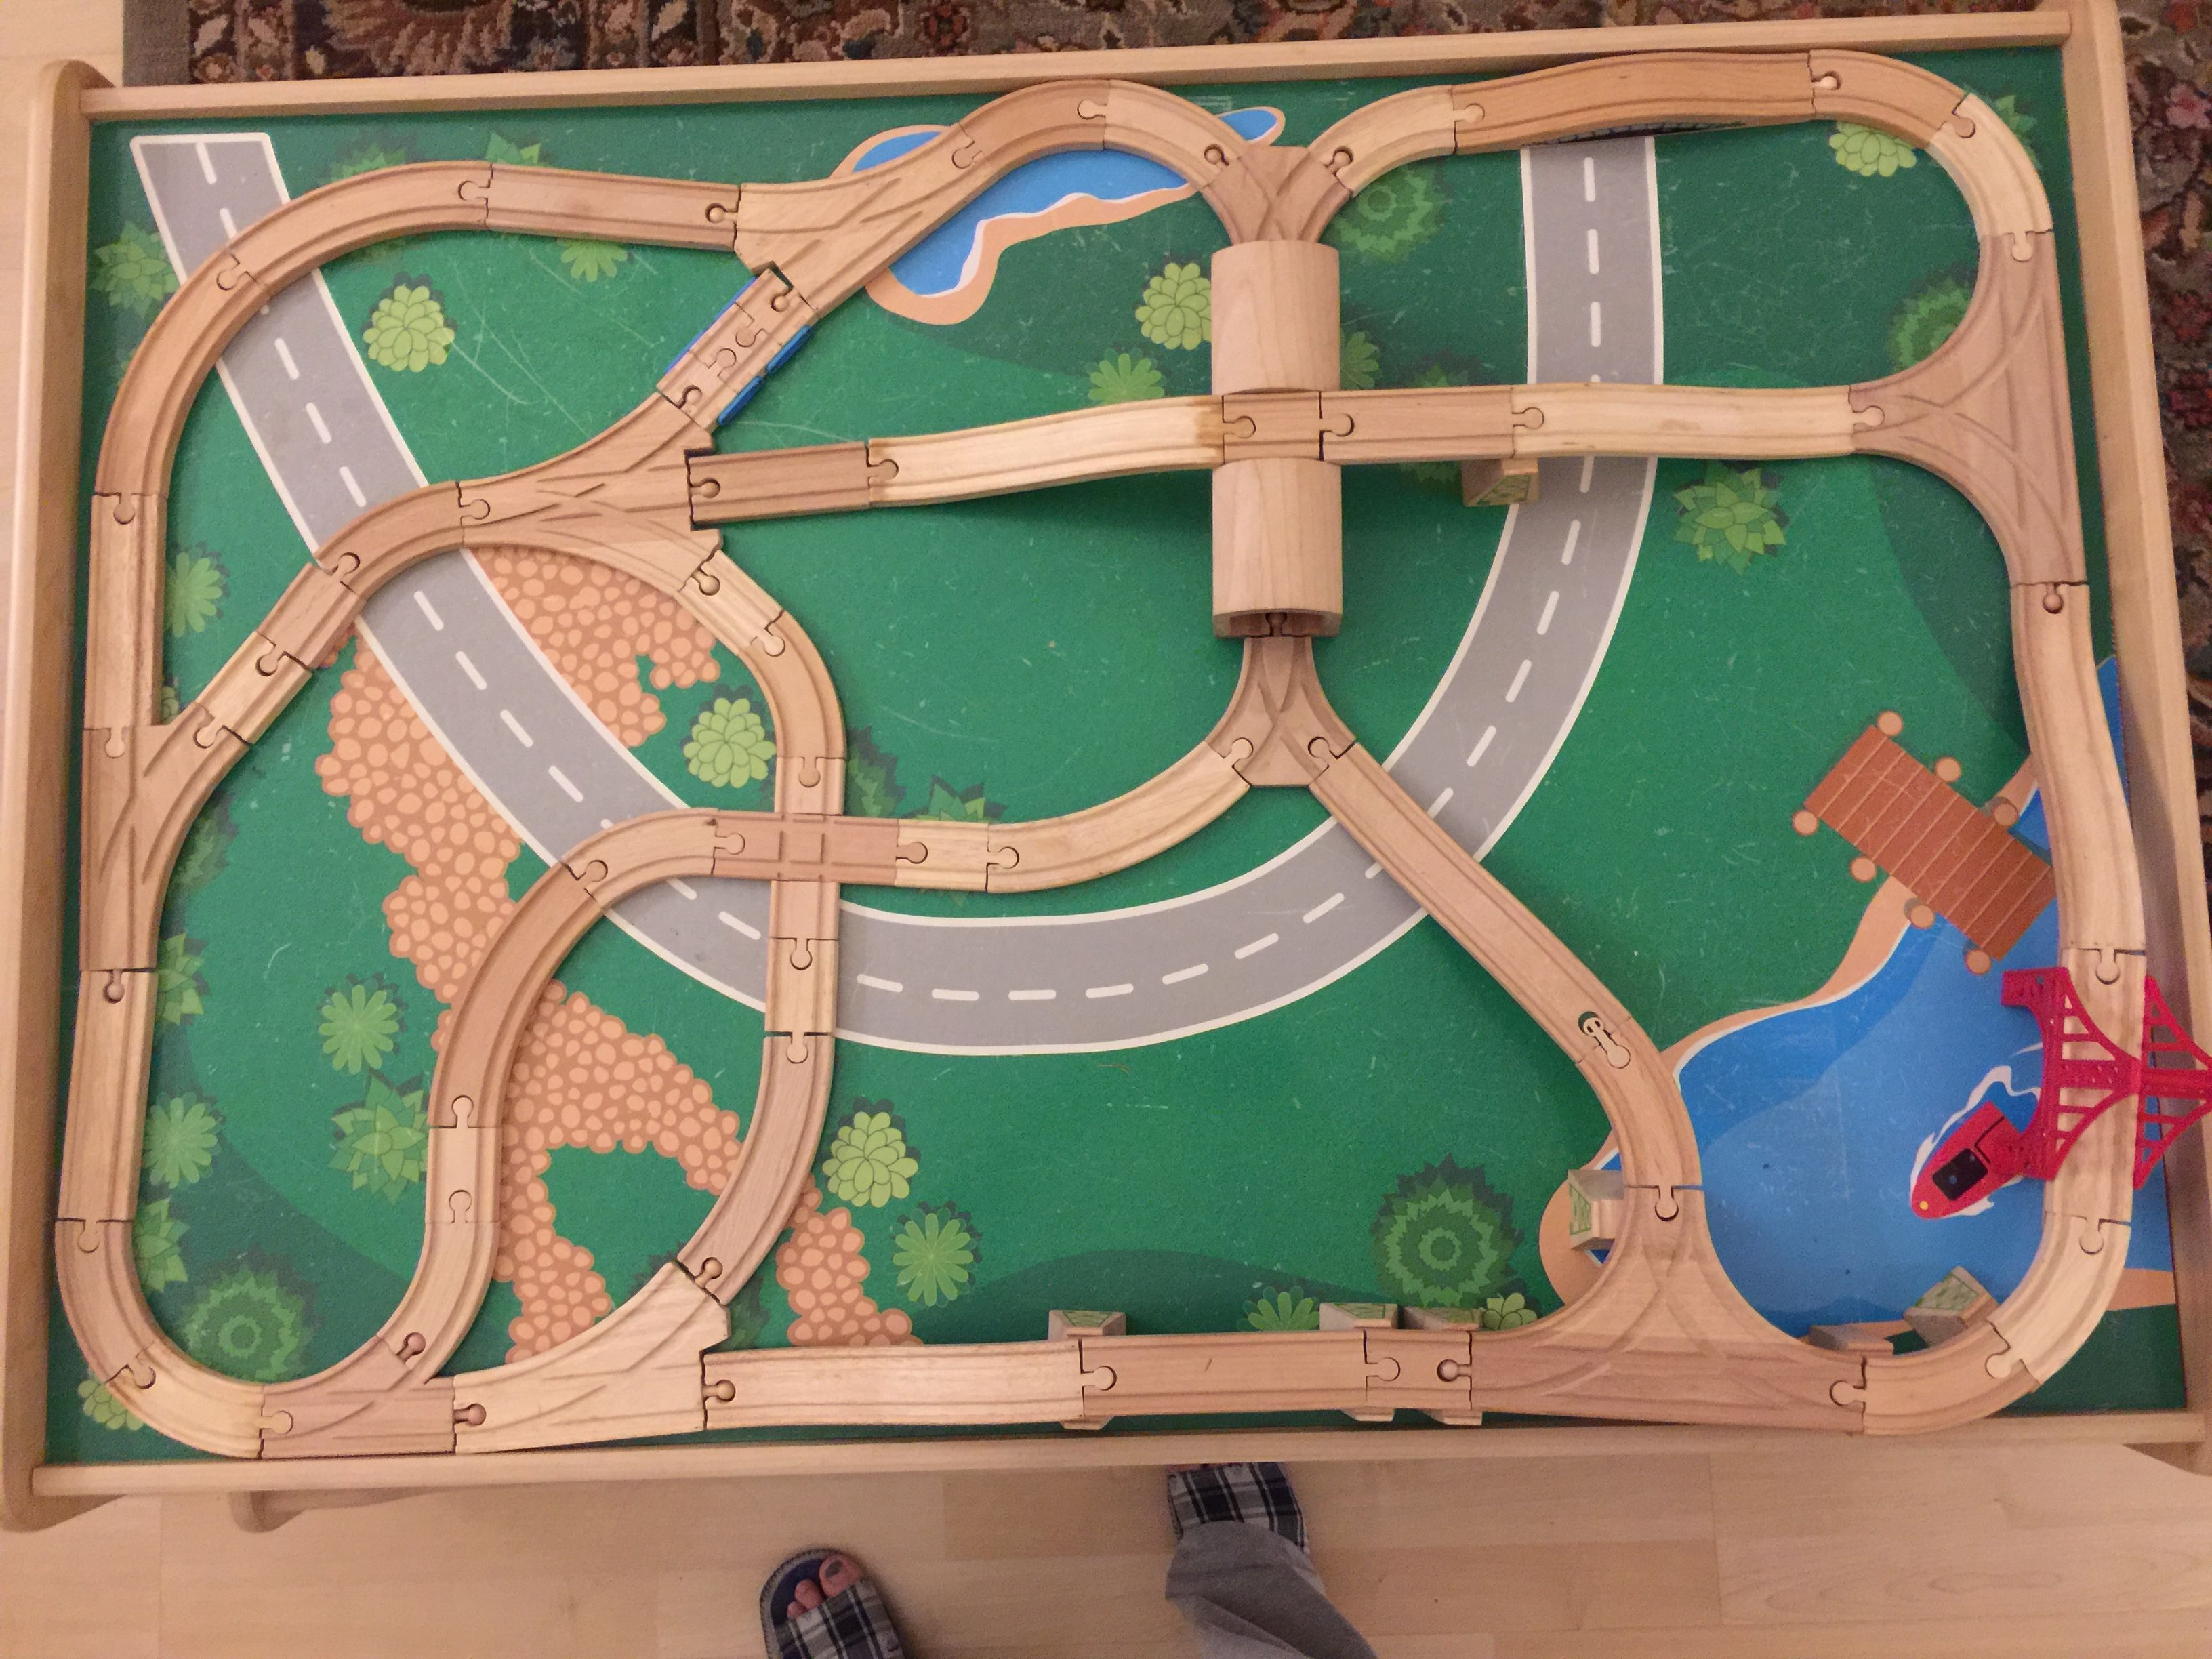 Pin by Angela Lee on Train track layout | Wooden train ...